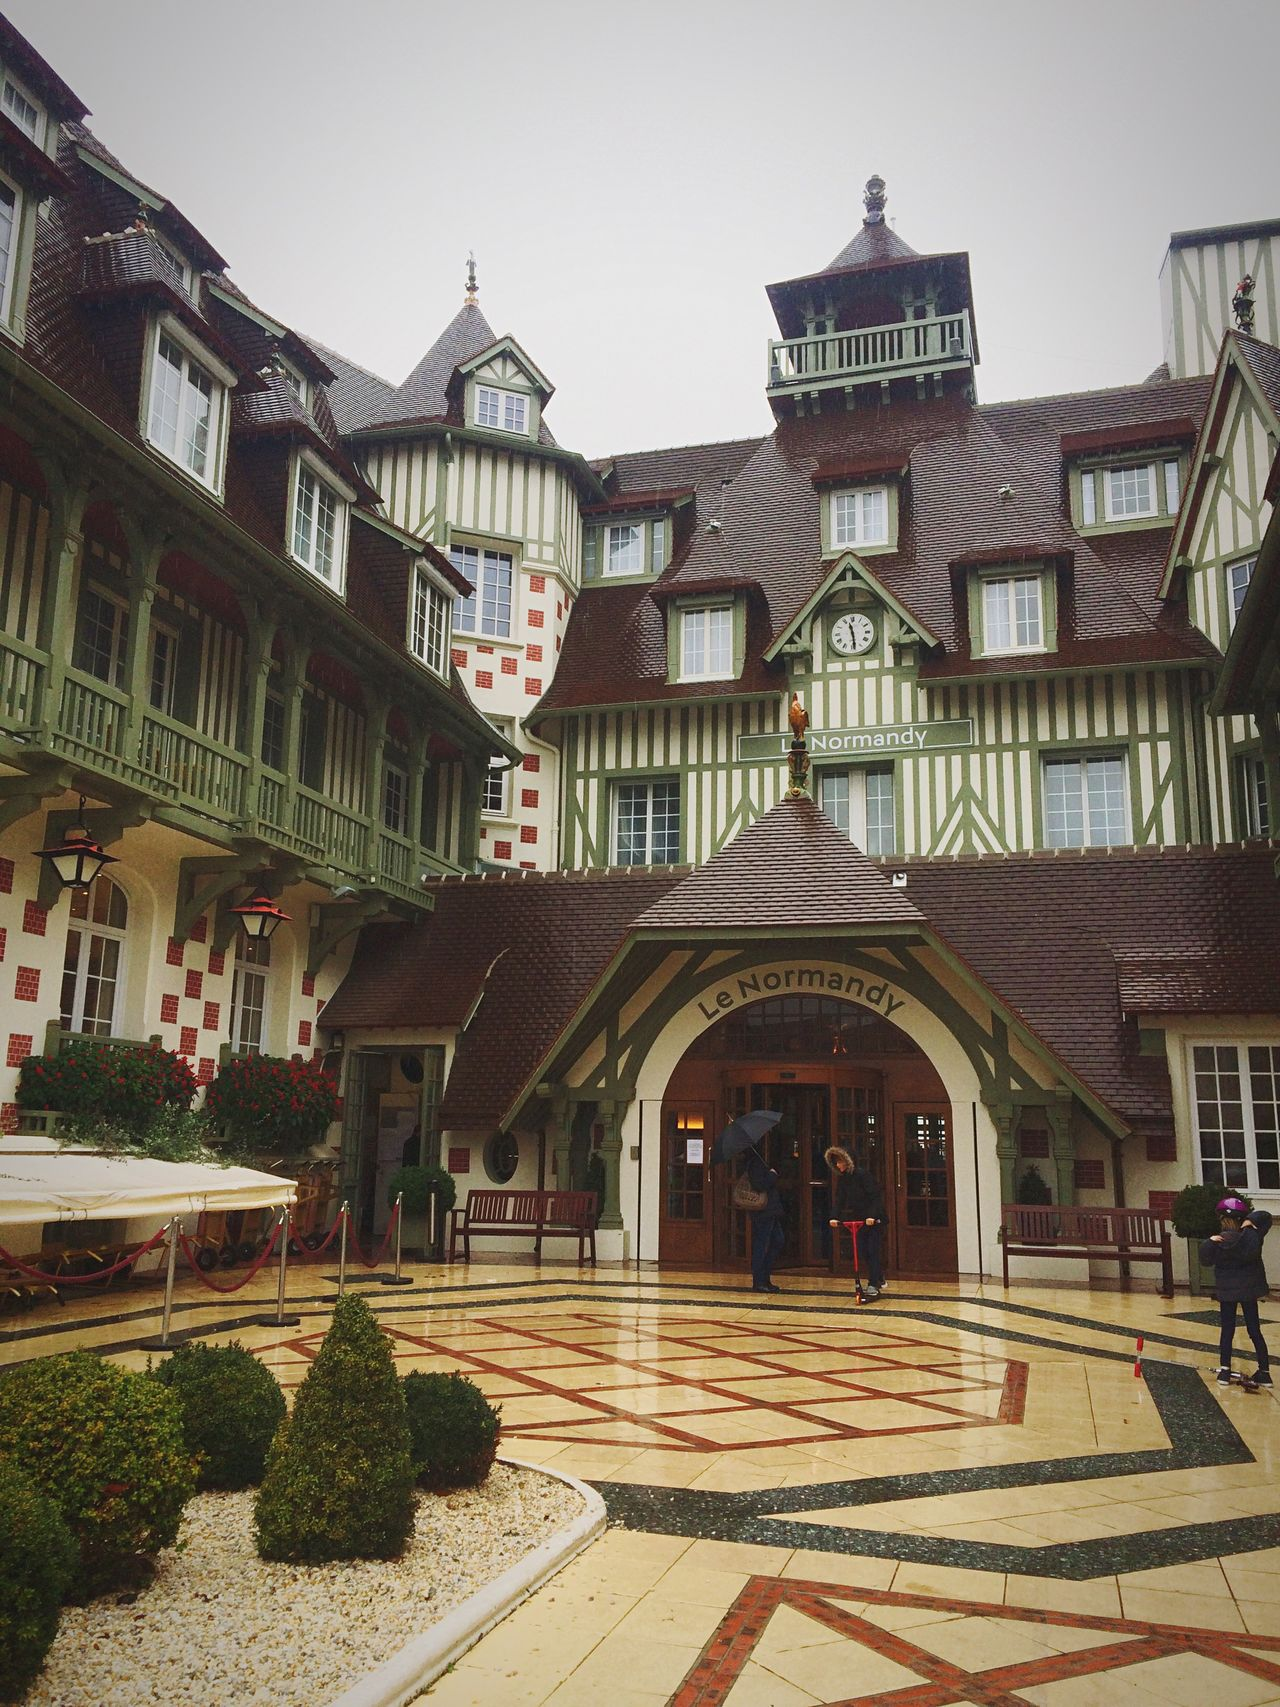 My Year My View Architecture Building Exterior Travel Destinations Normandie France Fivestarhotel City